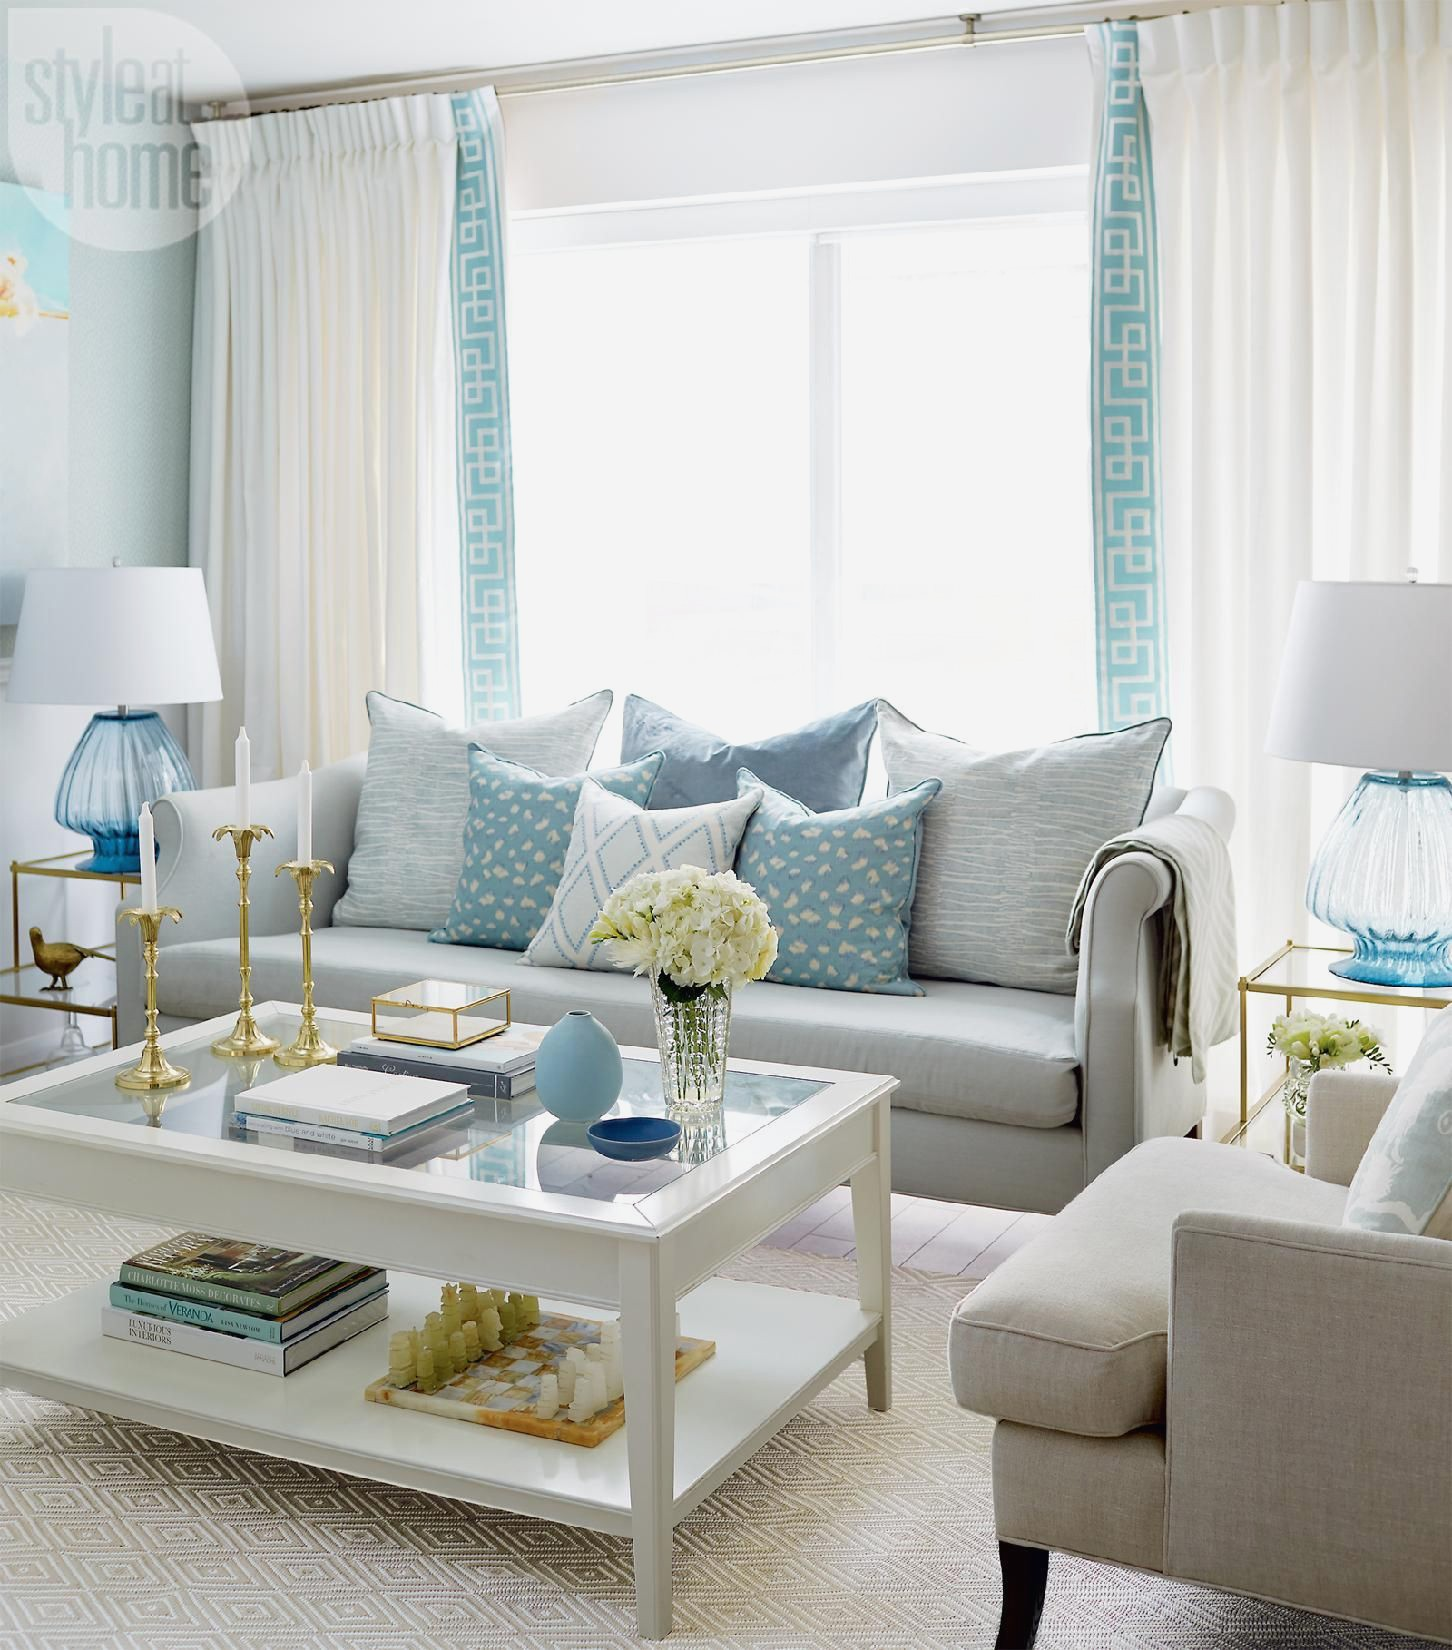 16 easy tricks to redesign your living room Design